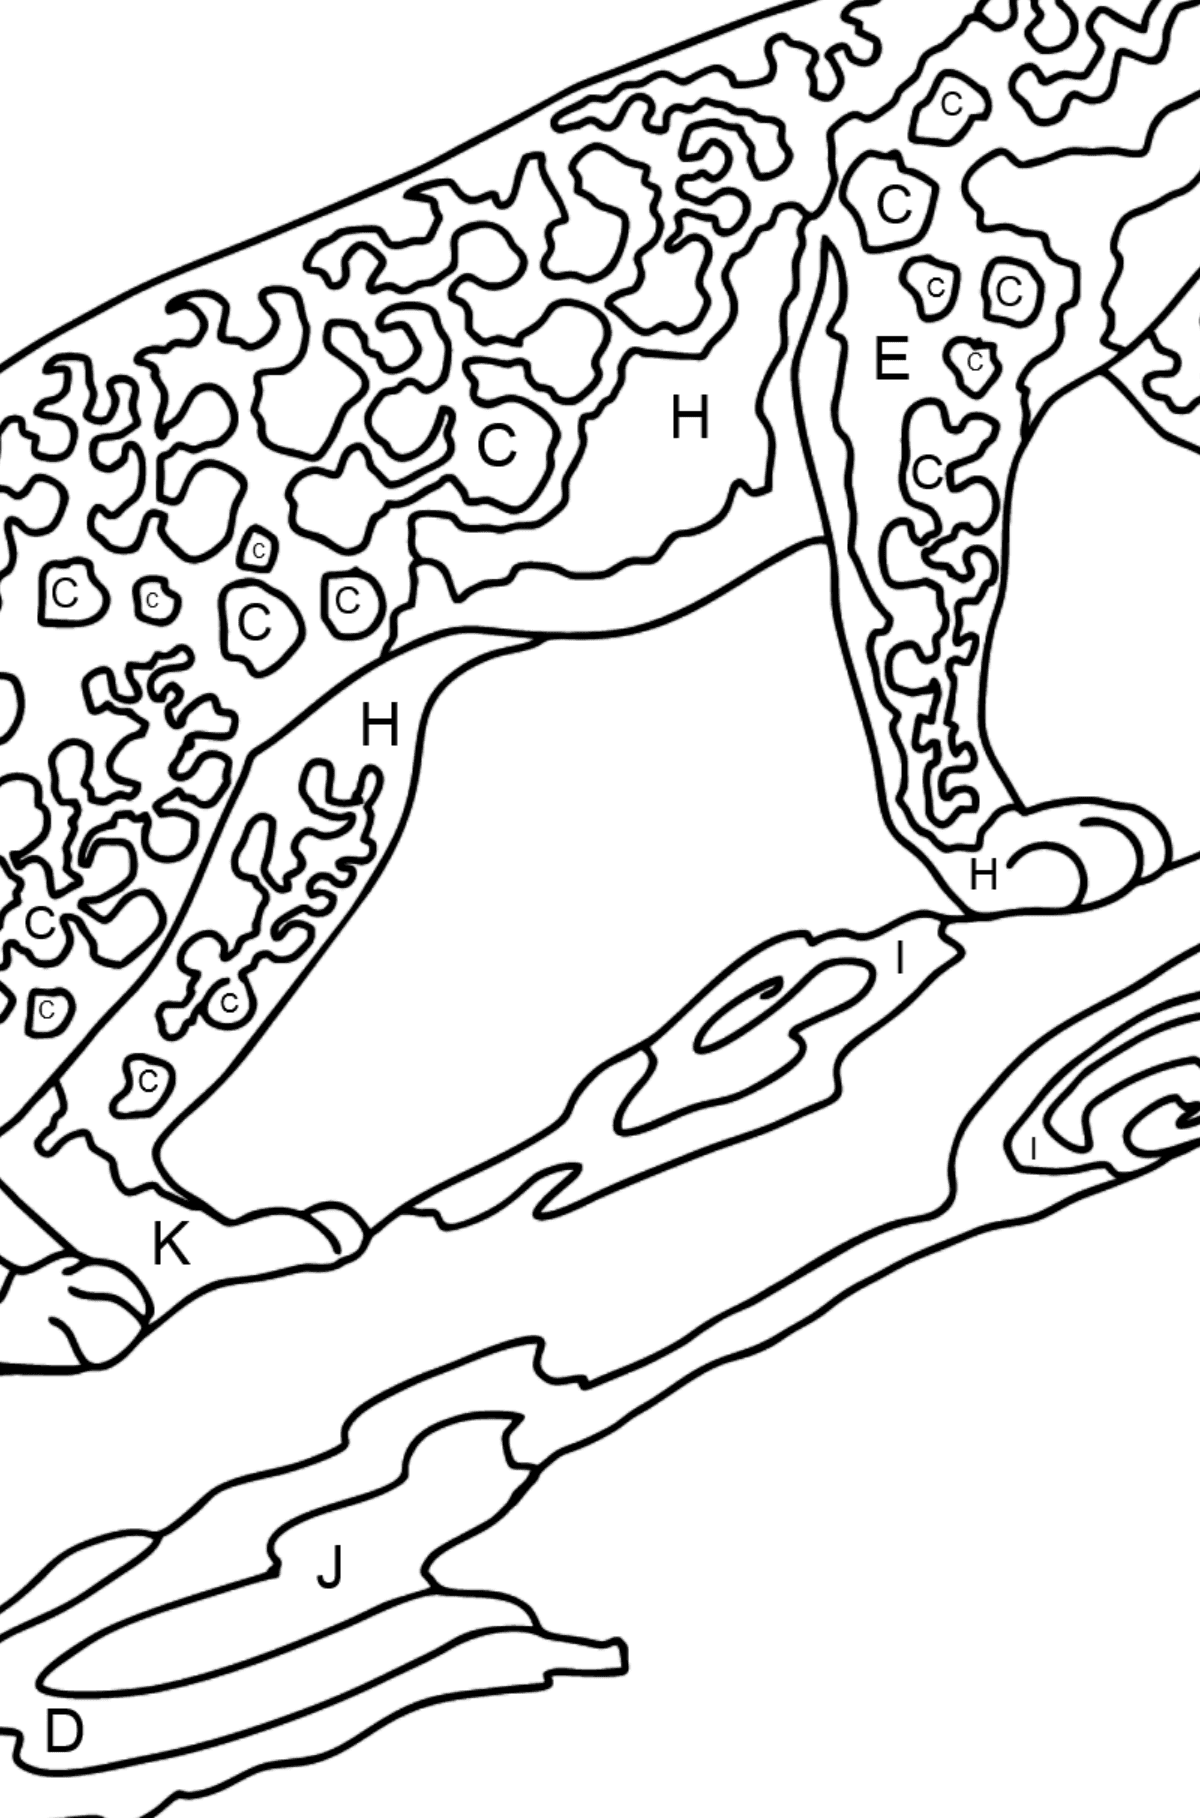 Coloring Page - A Leopard is on a Hunt - Coloring by Letters for Kids